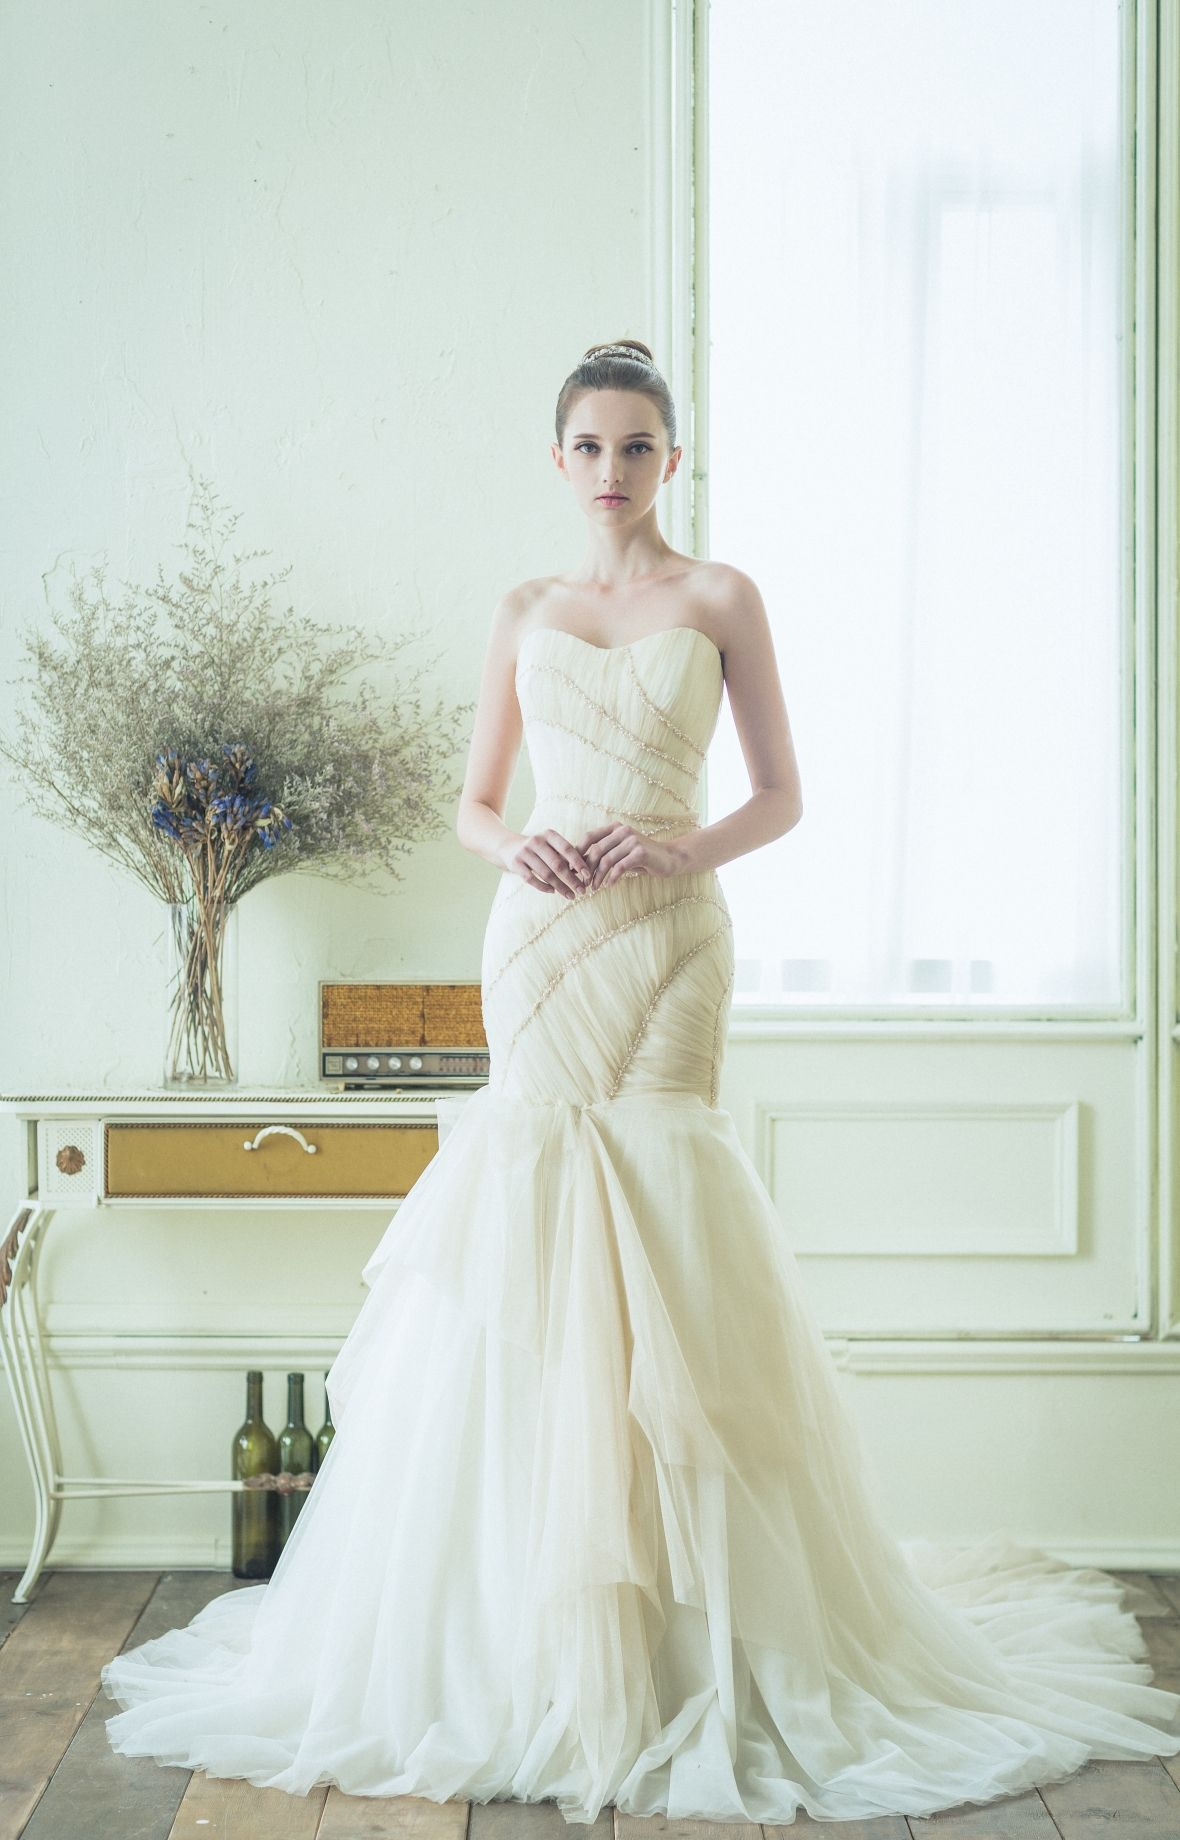 Atelier Ray Dress by Ray & Co. Wedding dresses, Modern